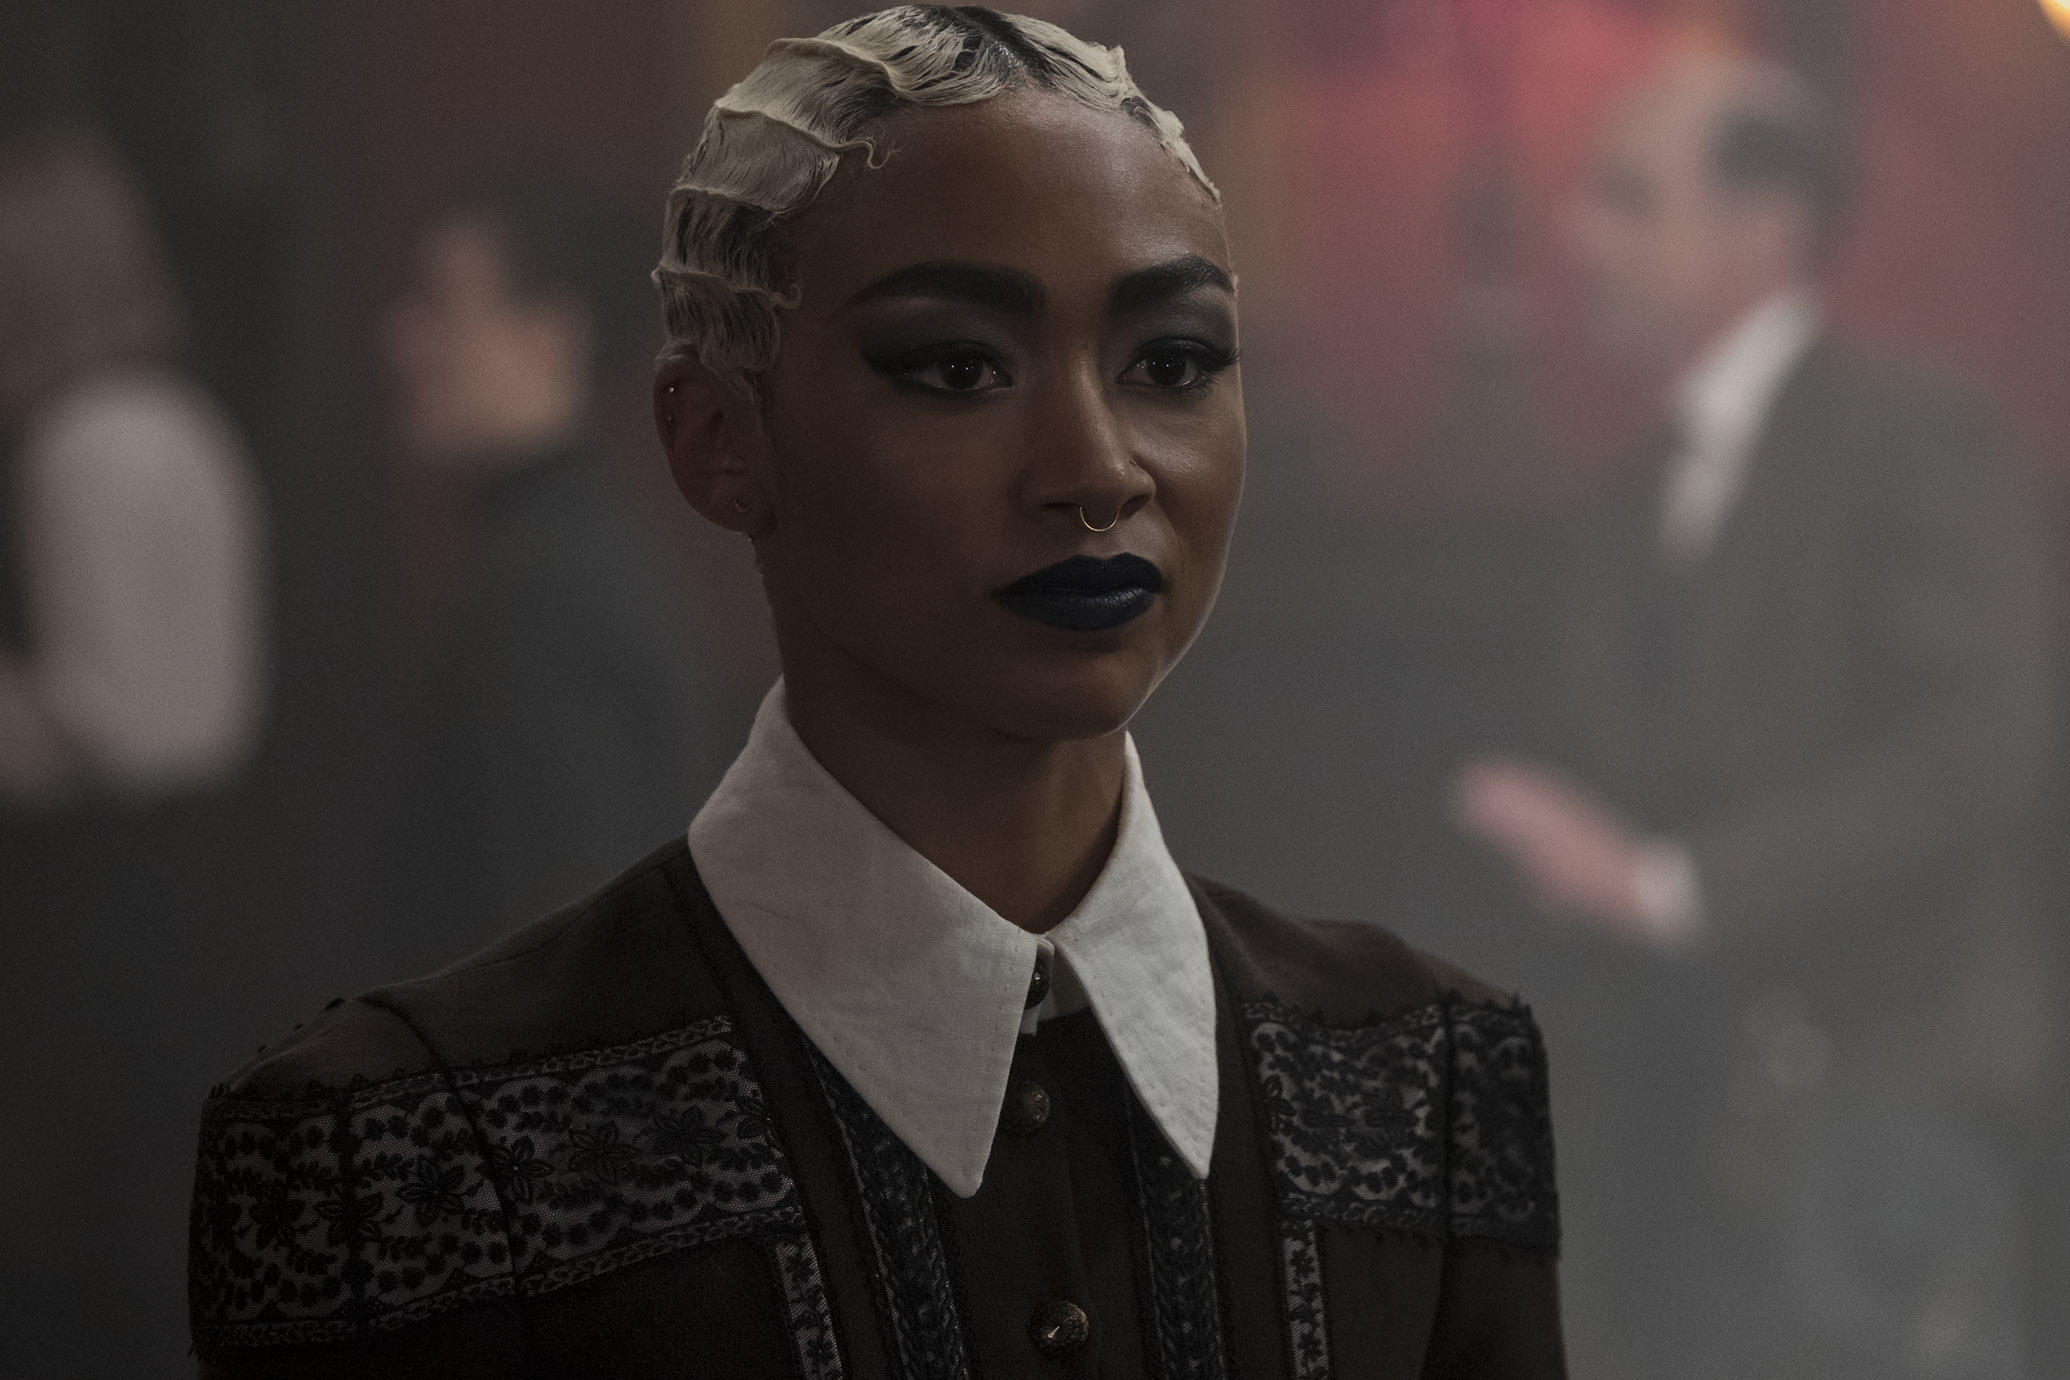 Character Prudence Blackwood from The Chilling Adventures of Sabrina, Netflix